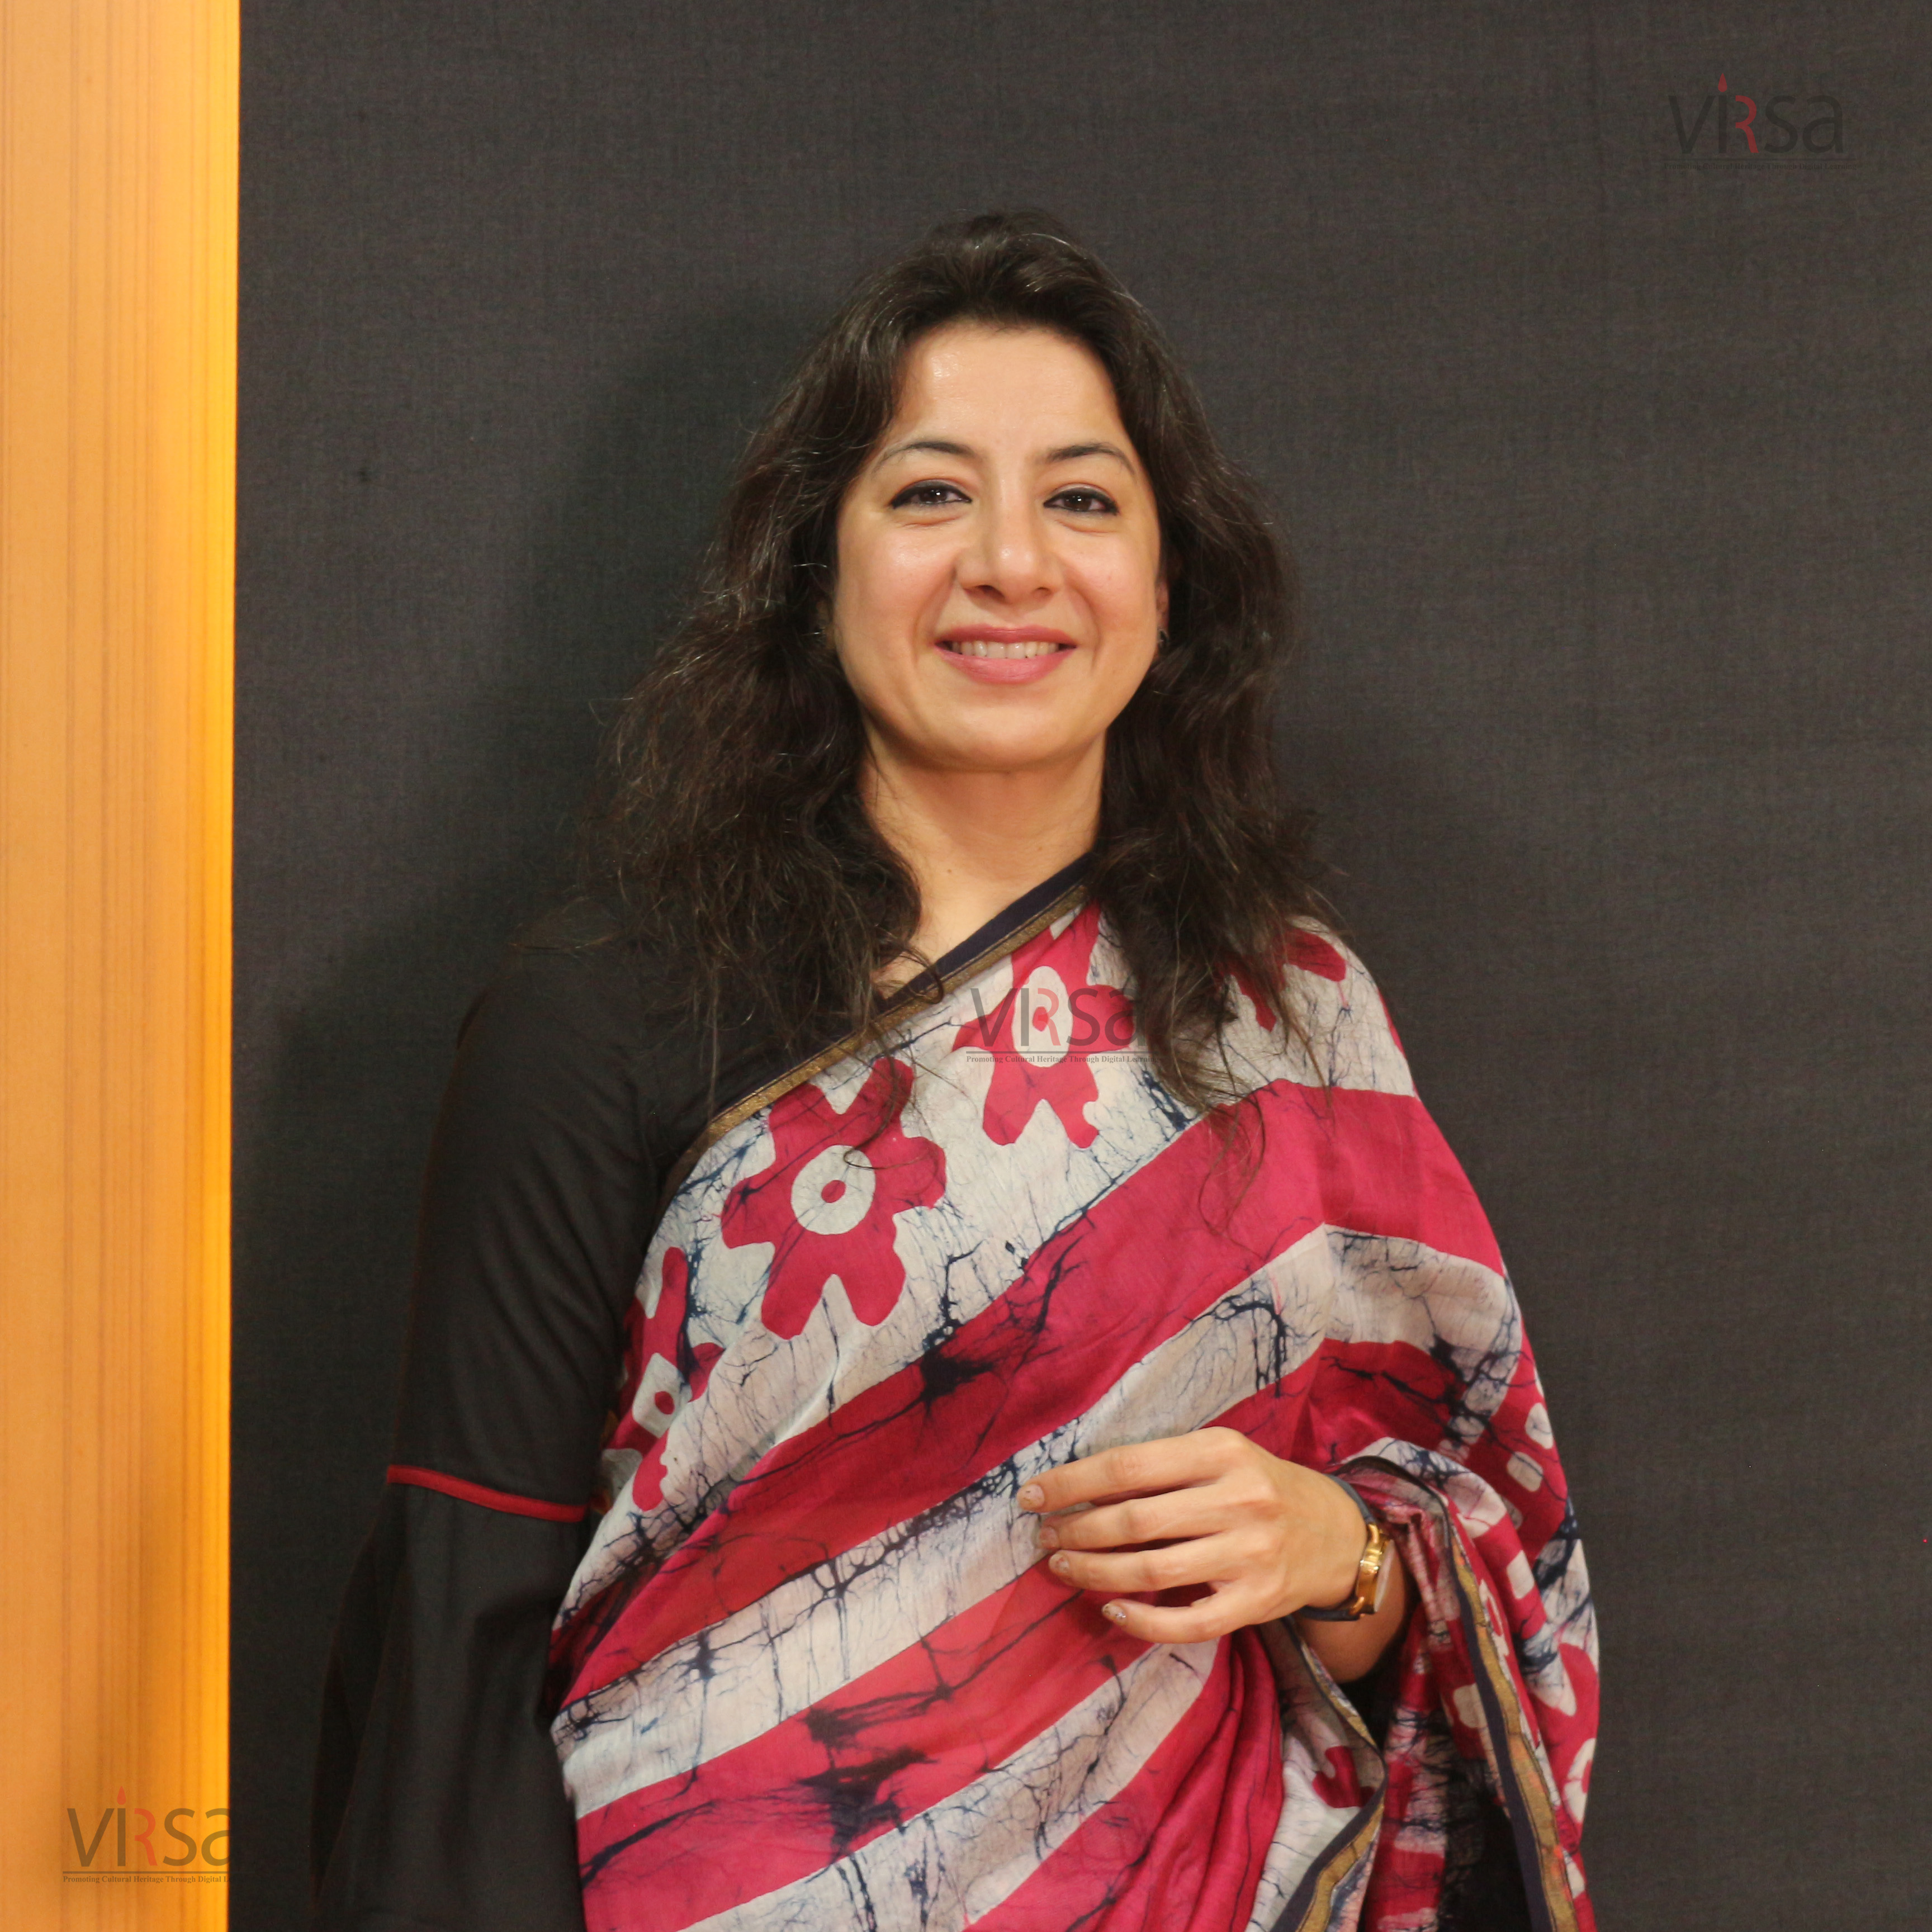 Mrs. Dimple Mehta